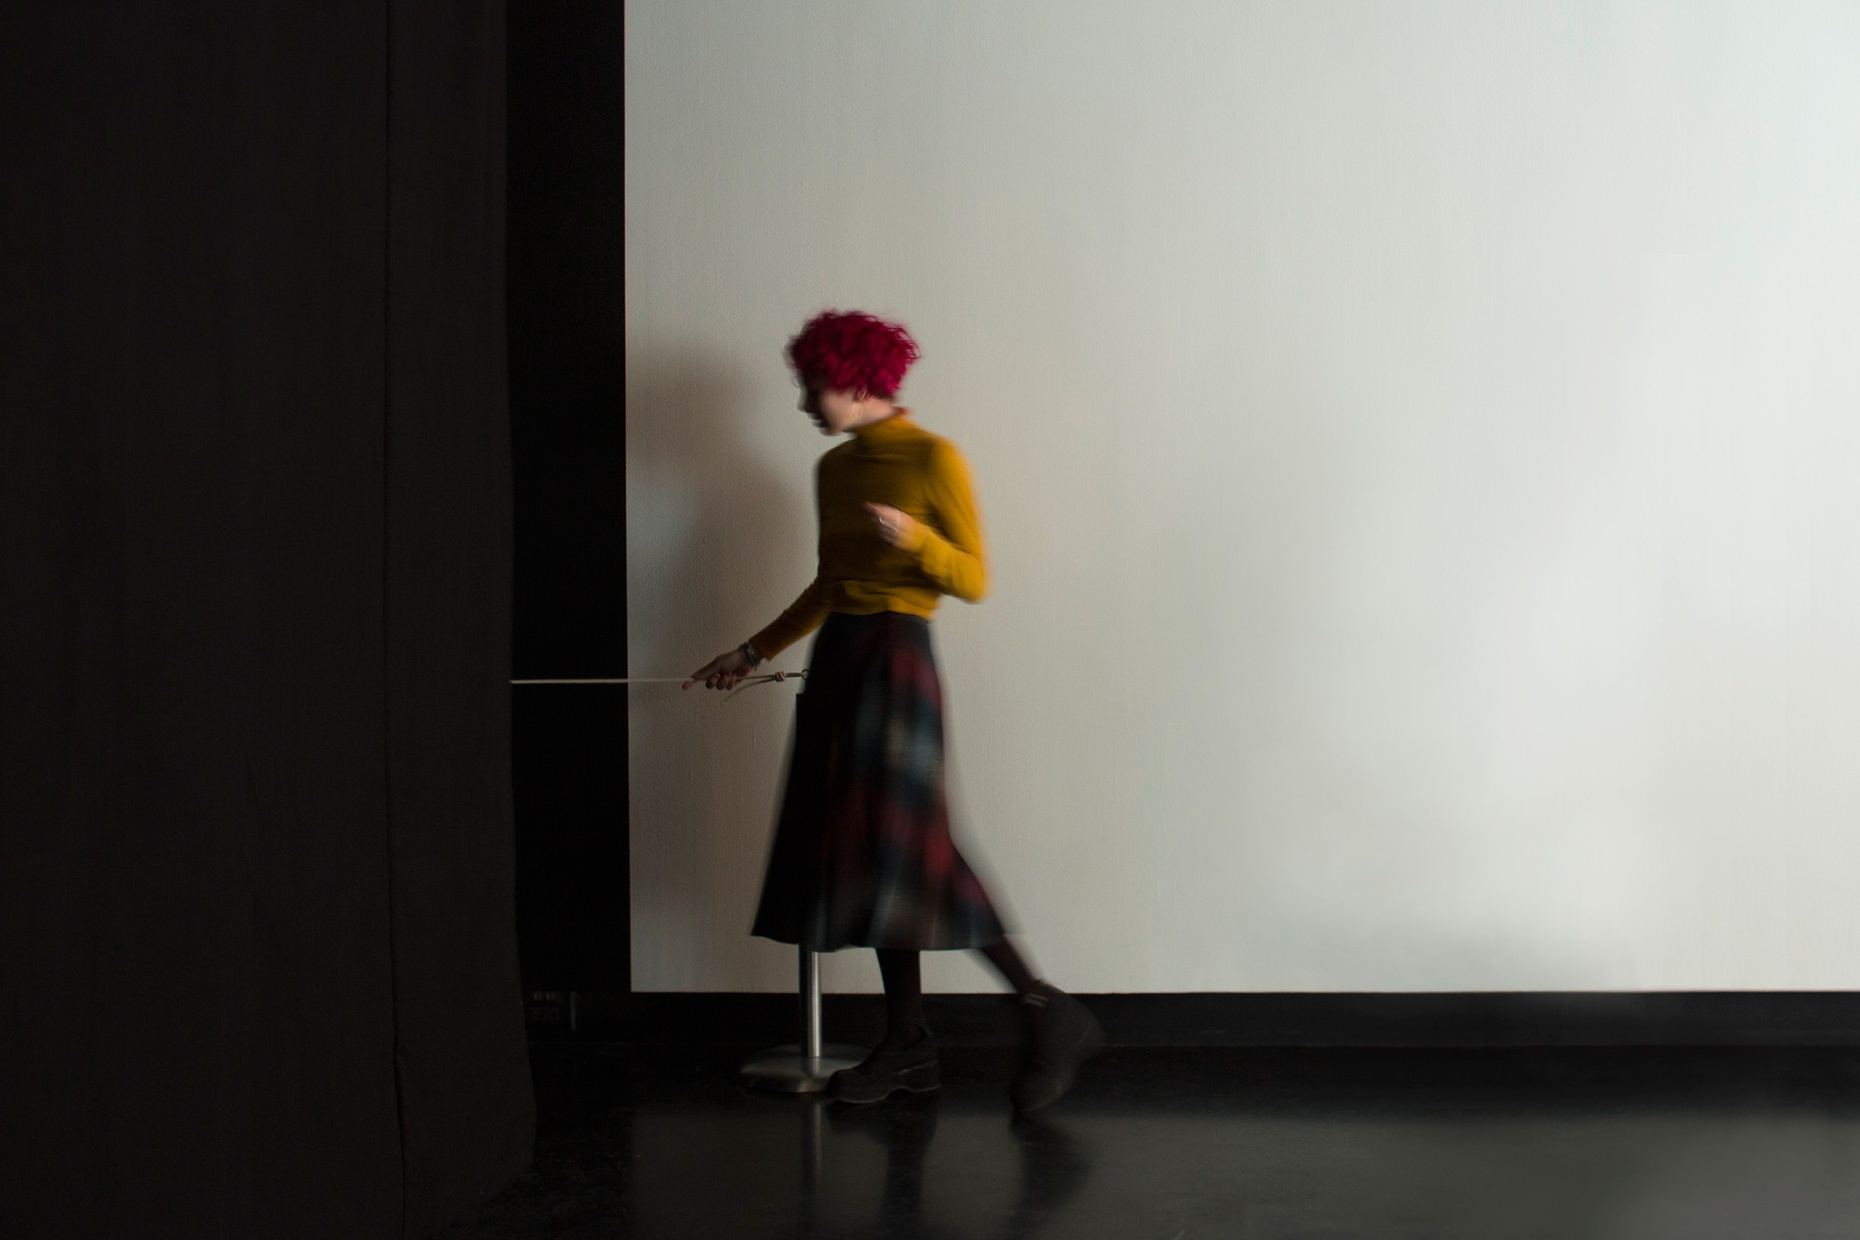 A light-skinned, young person walking into a dark room holding onto a rope attached to the wall.